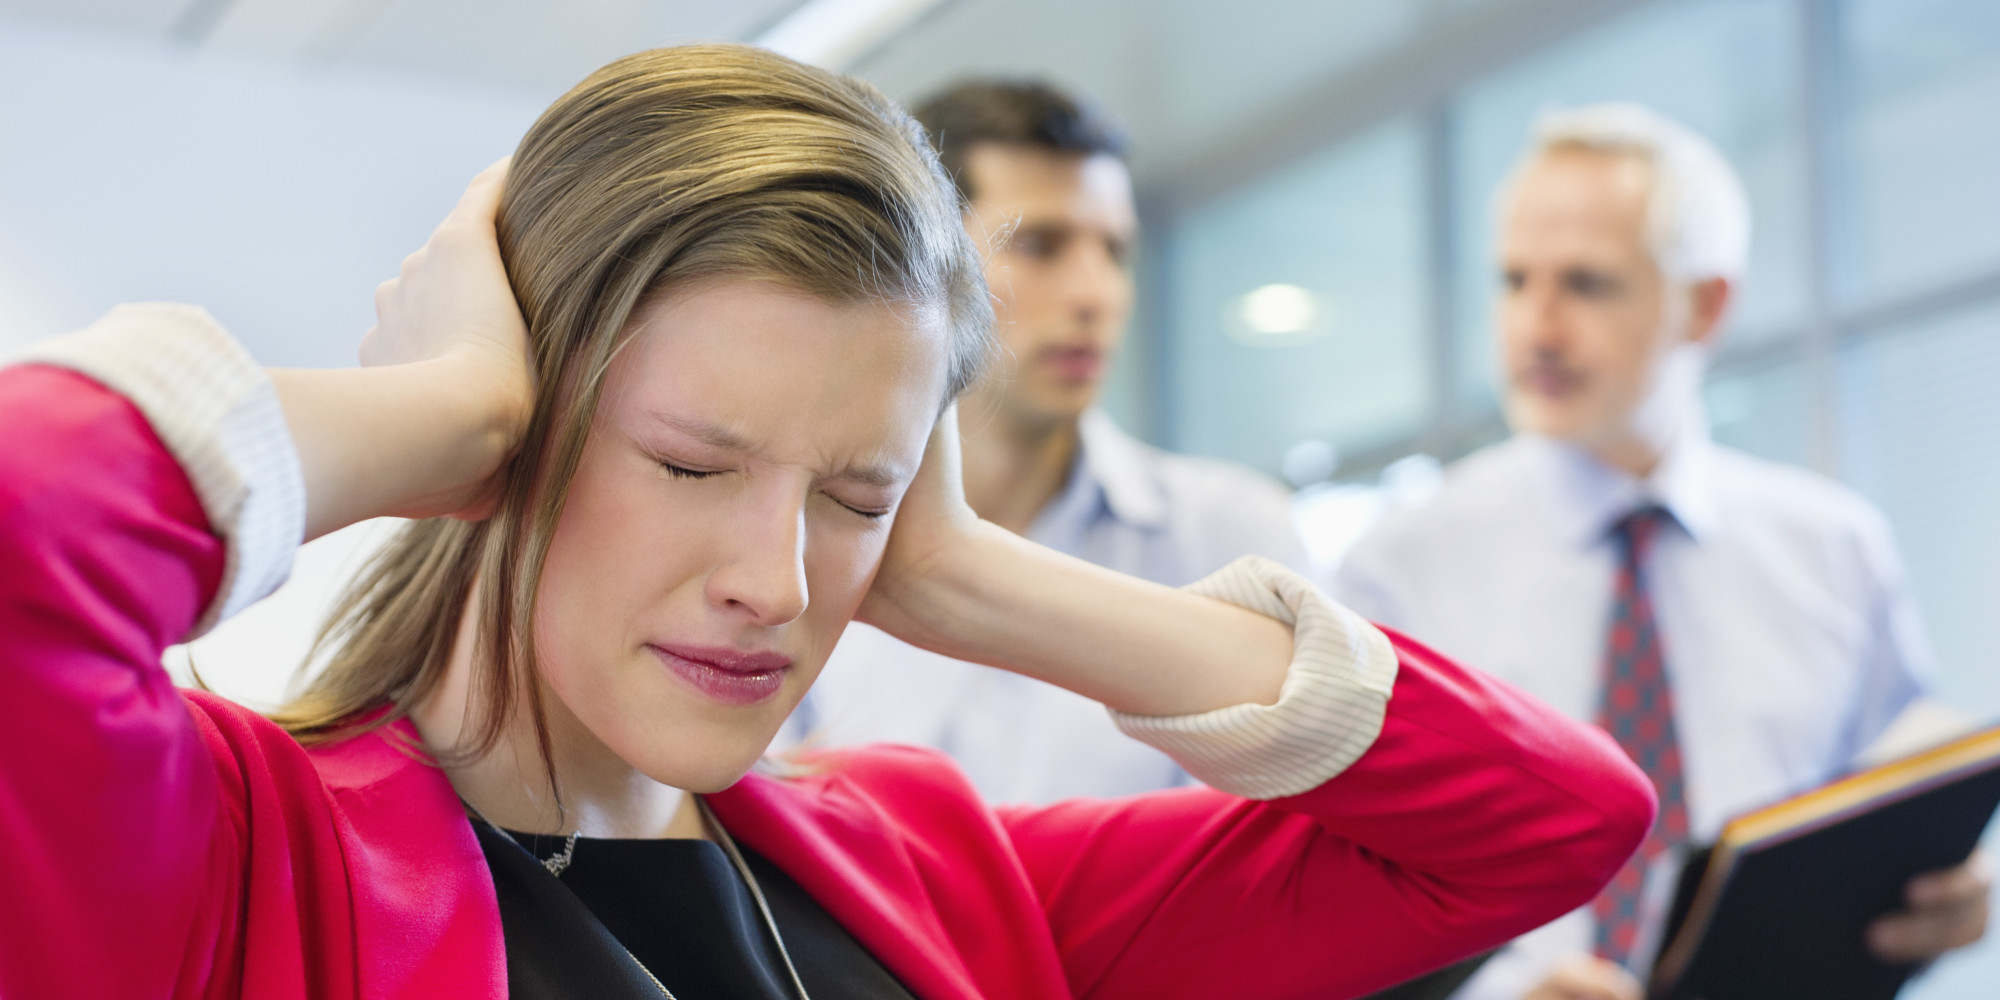 How To Cope With Annoying Coworkers Who Make Your Day